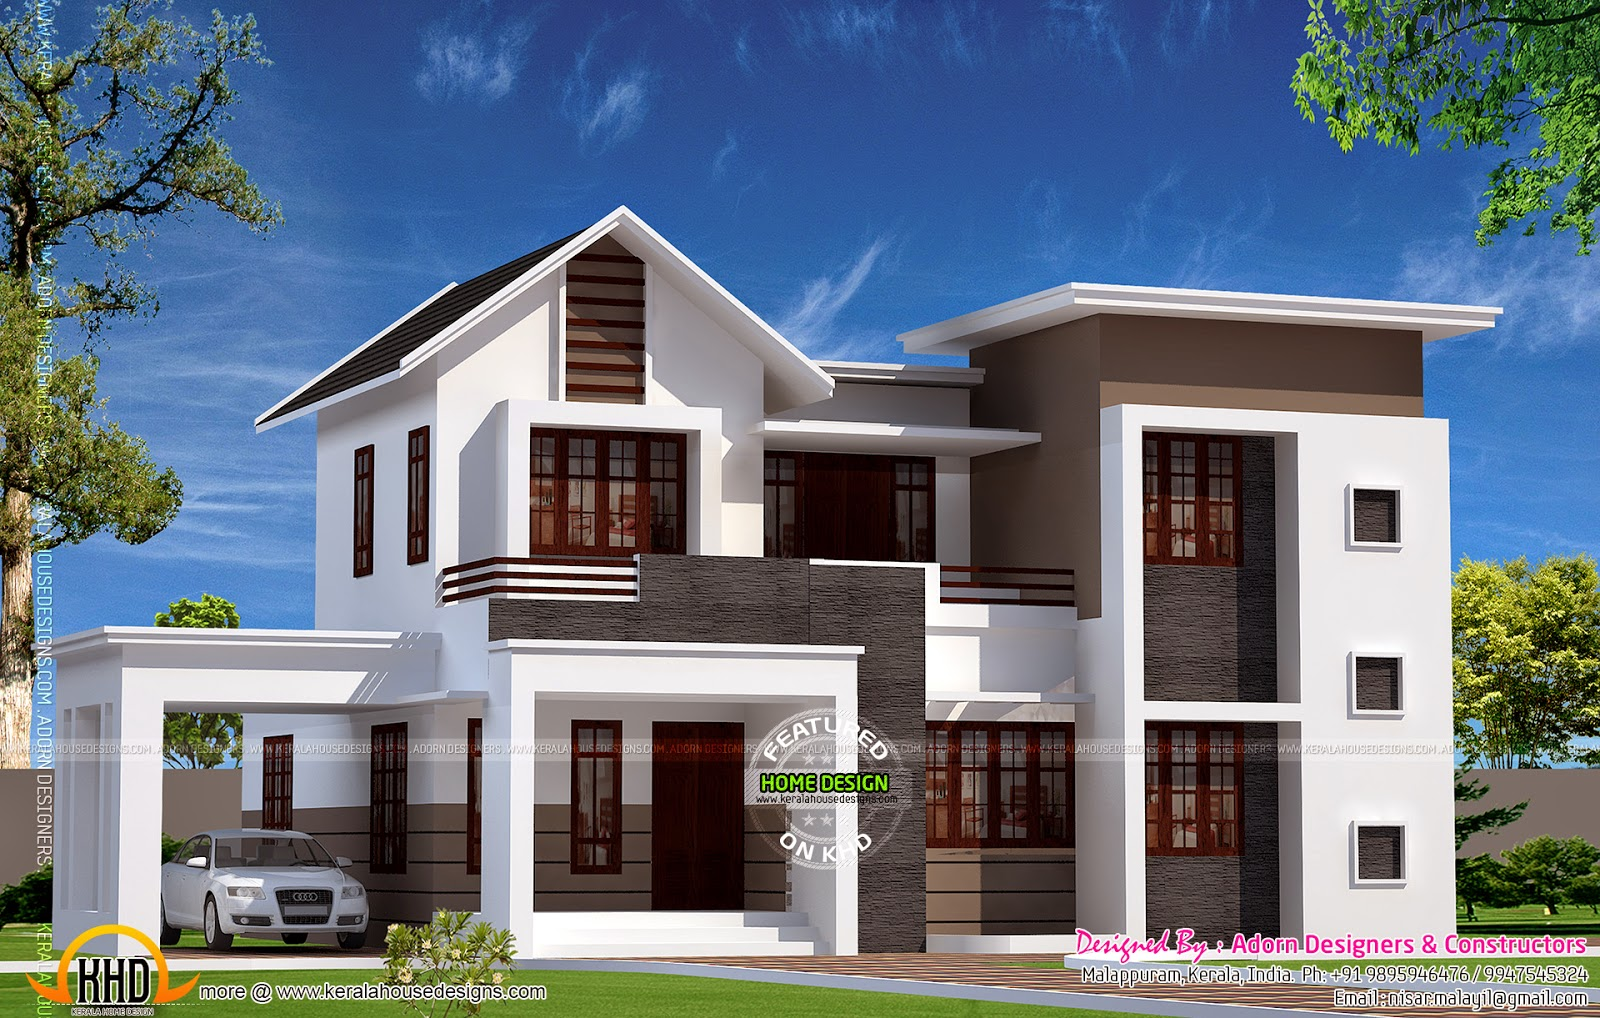 New house design in 1900 sq feet kerala home design and for New house styles pictures